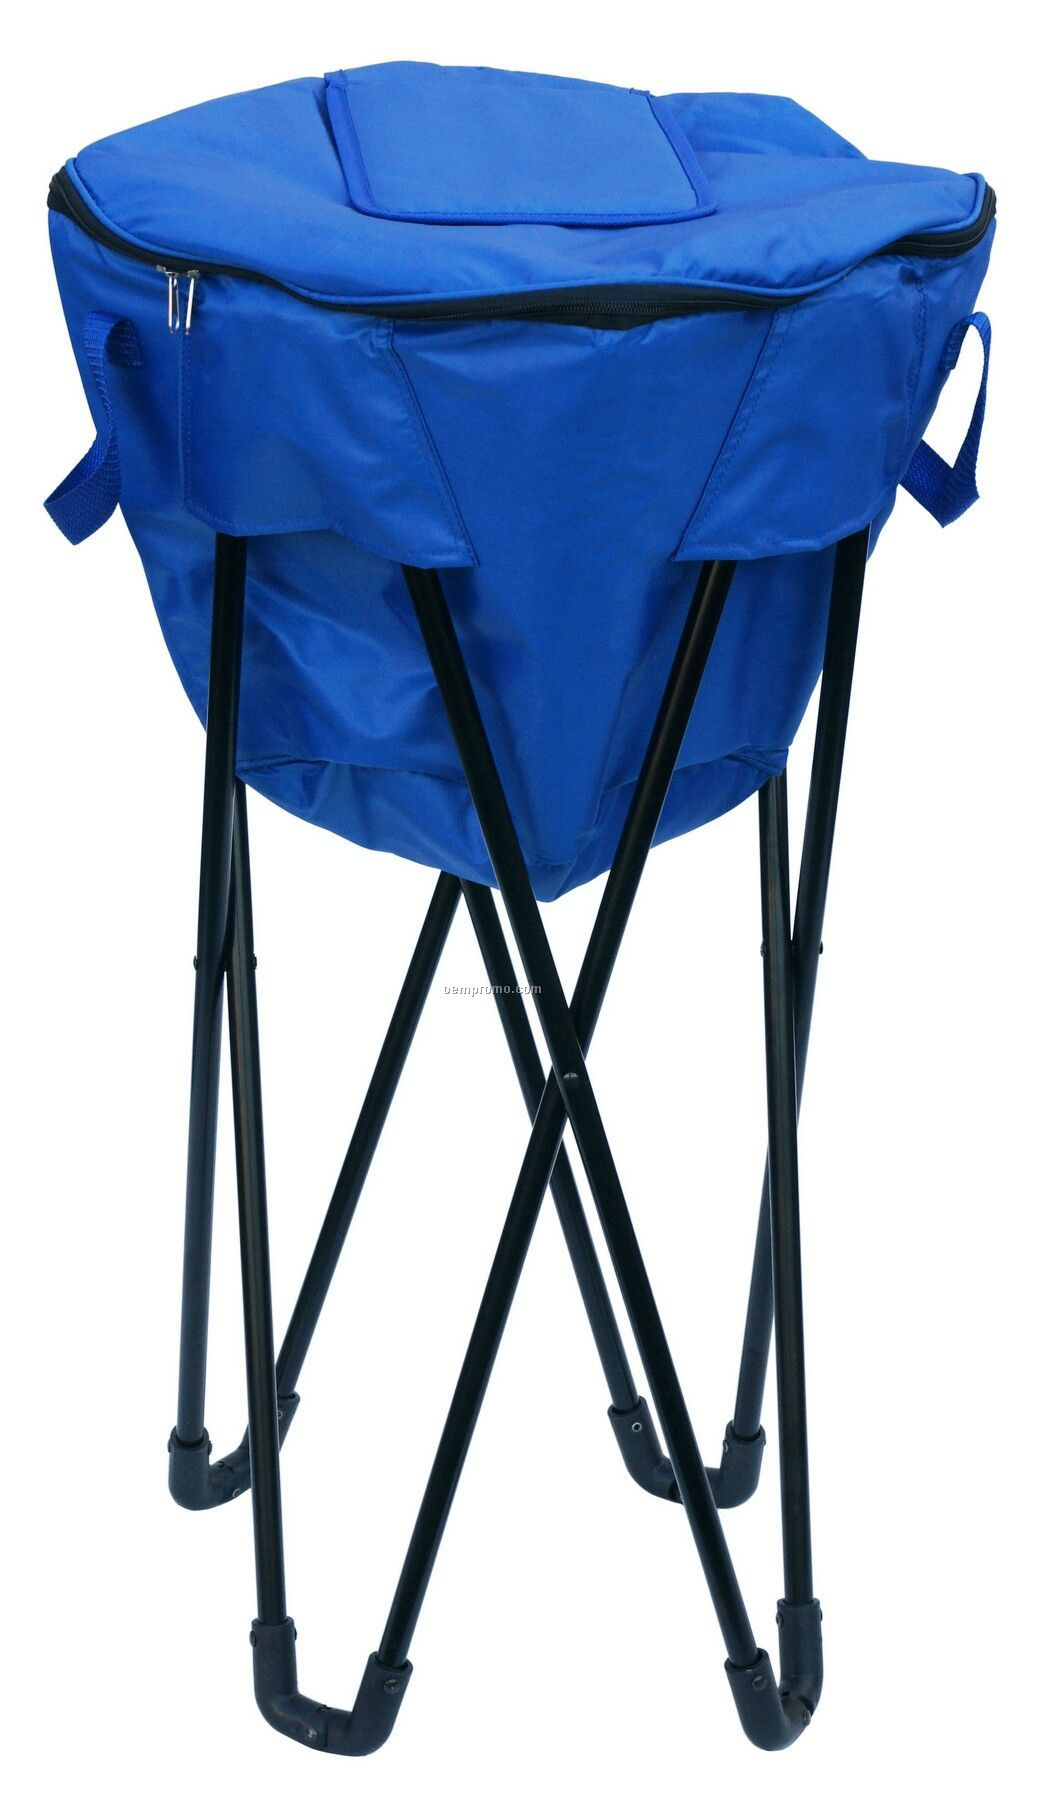 Direct Import Large Capacity Cooler With Collapsible Stand